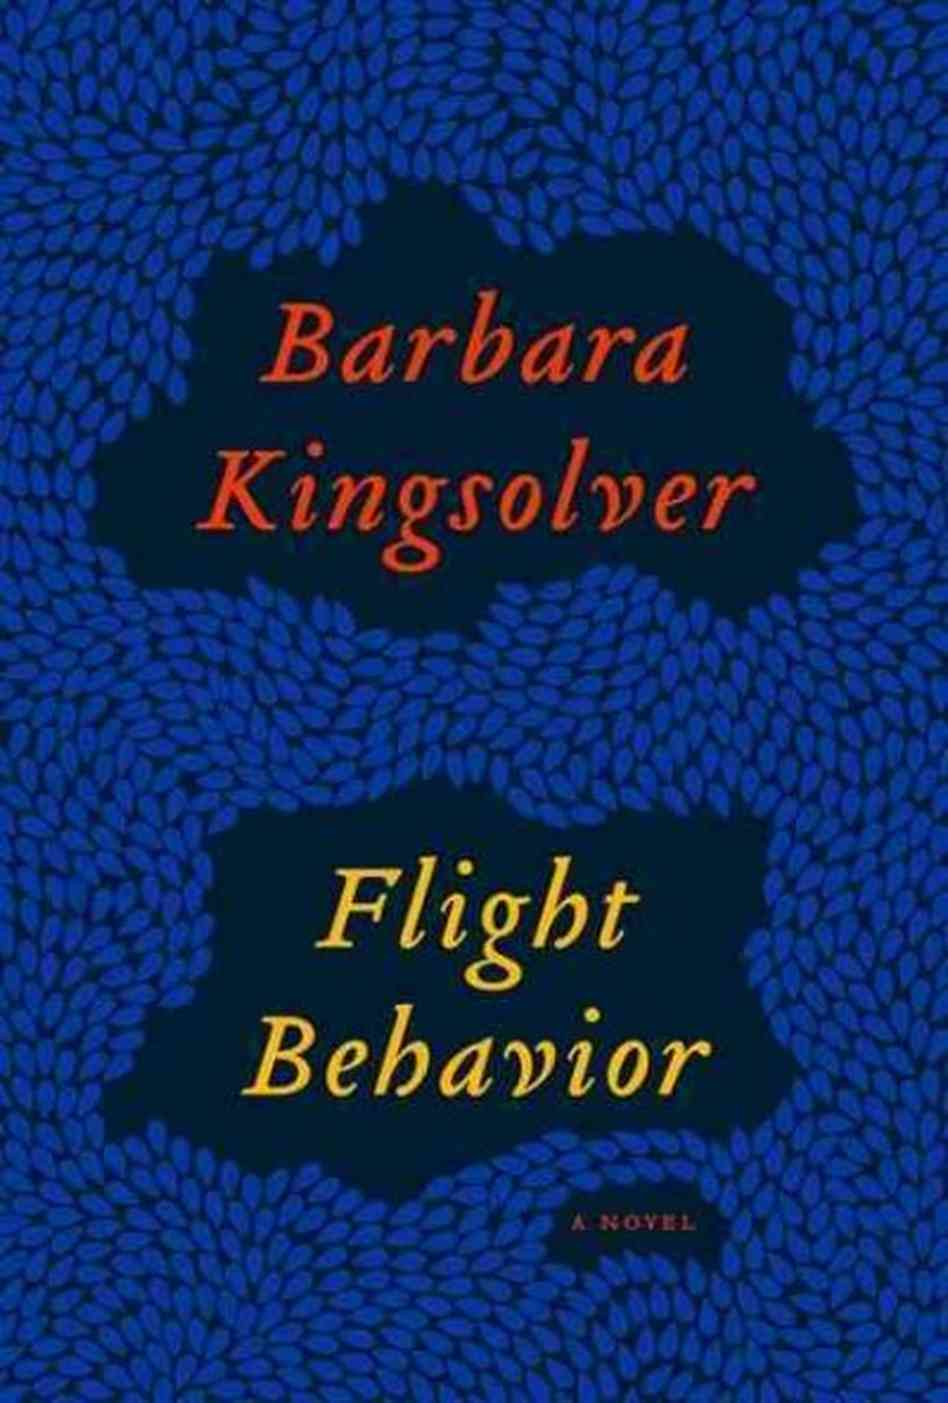 a plot review of barbara kingsolvers animal dreams Barbara kingsolver is an american novelist, essayist and poet  animal dreams by barbara kingsolver - life cycles - duration:  the lacuna by barbara kingsolver - book review by carole beu.